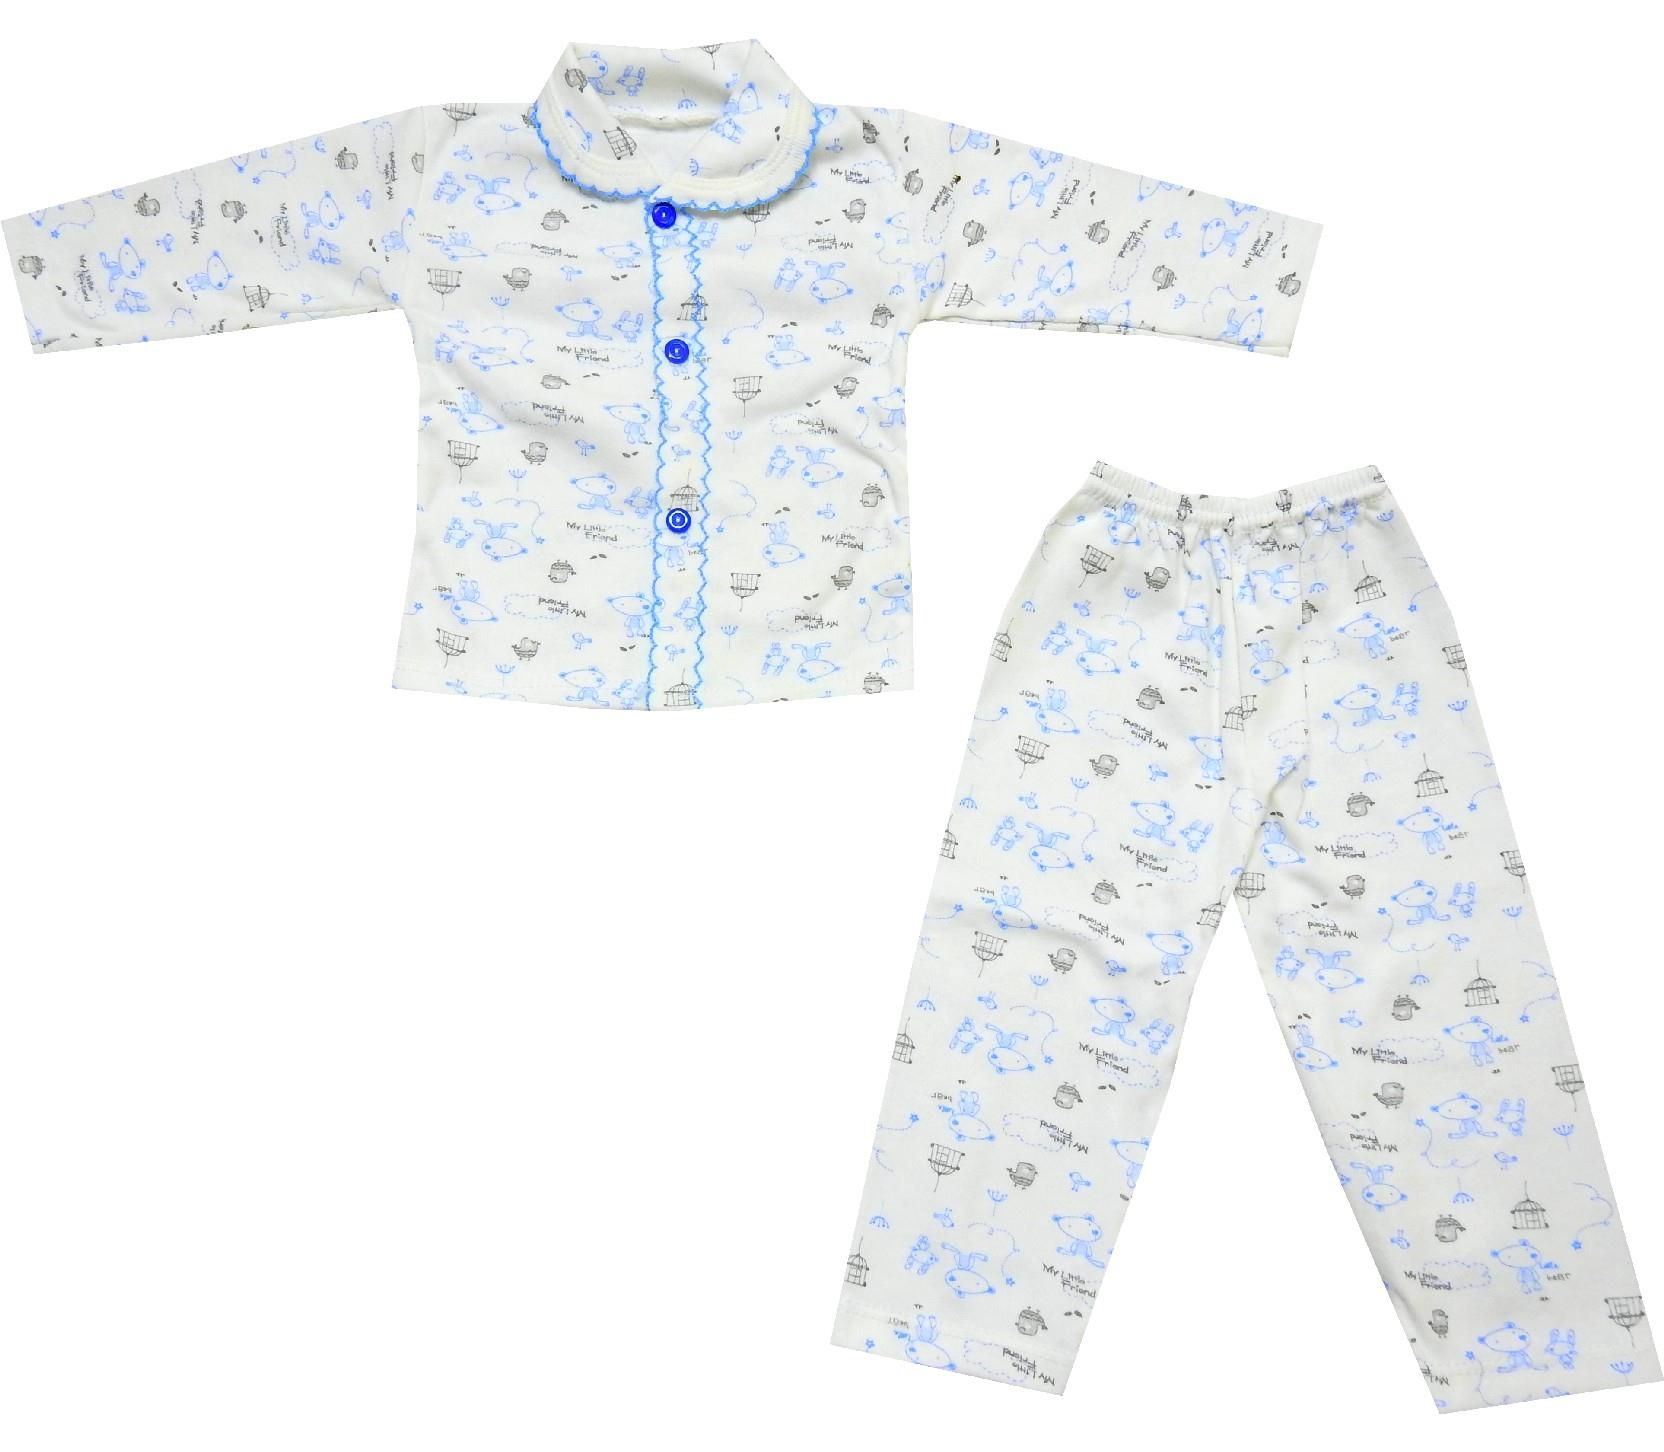 128 wholesale embroidery pyjama for children 9 12 month